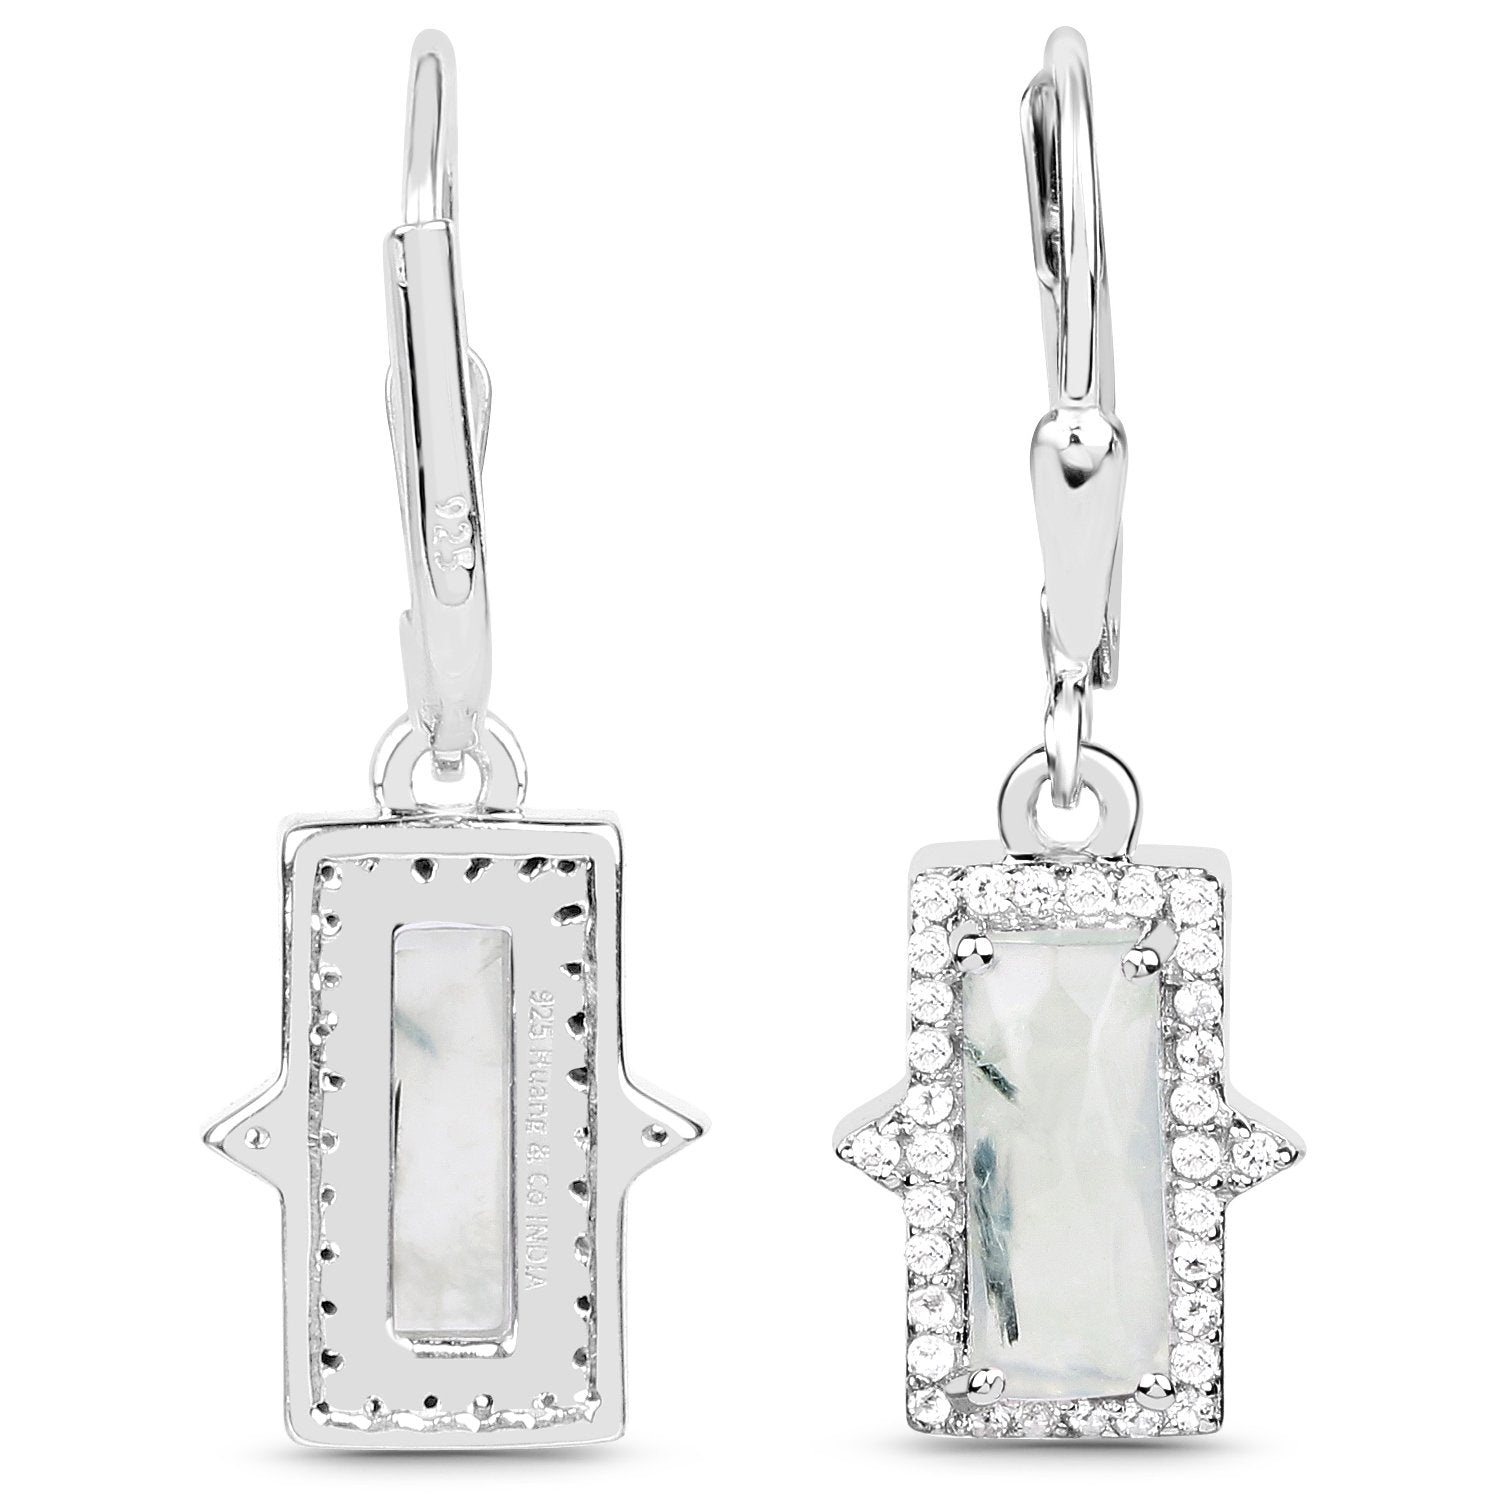 LoveHuang 3.20 Carats Genuine Prehnite and White Topaz Baguette Dangle Earrings Solid .925 Sterling Silver With Rhodium Plating